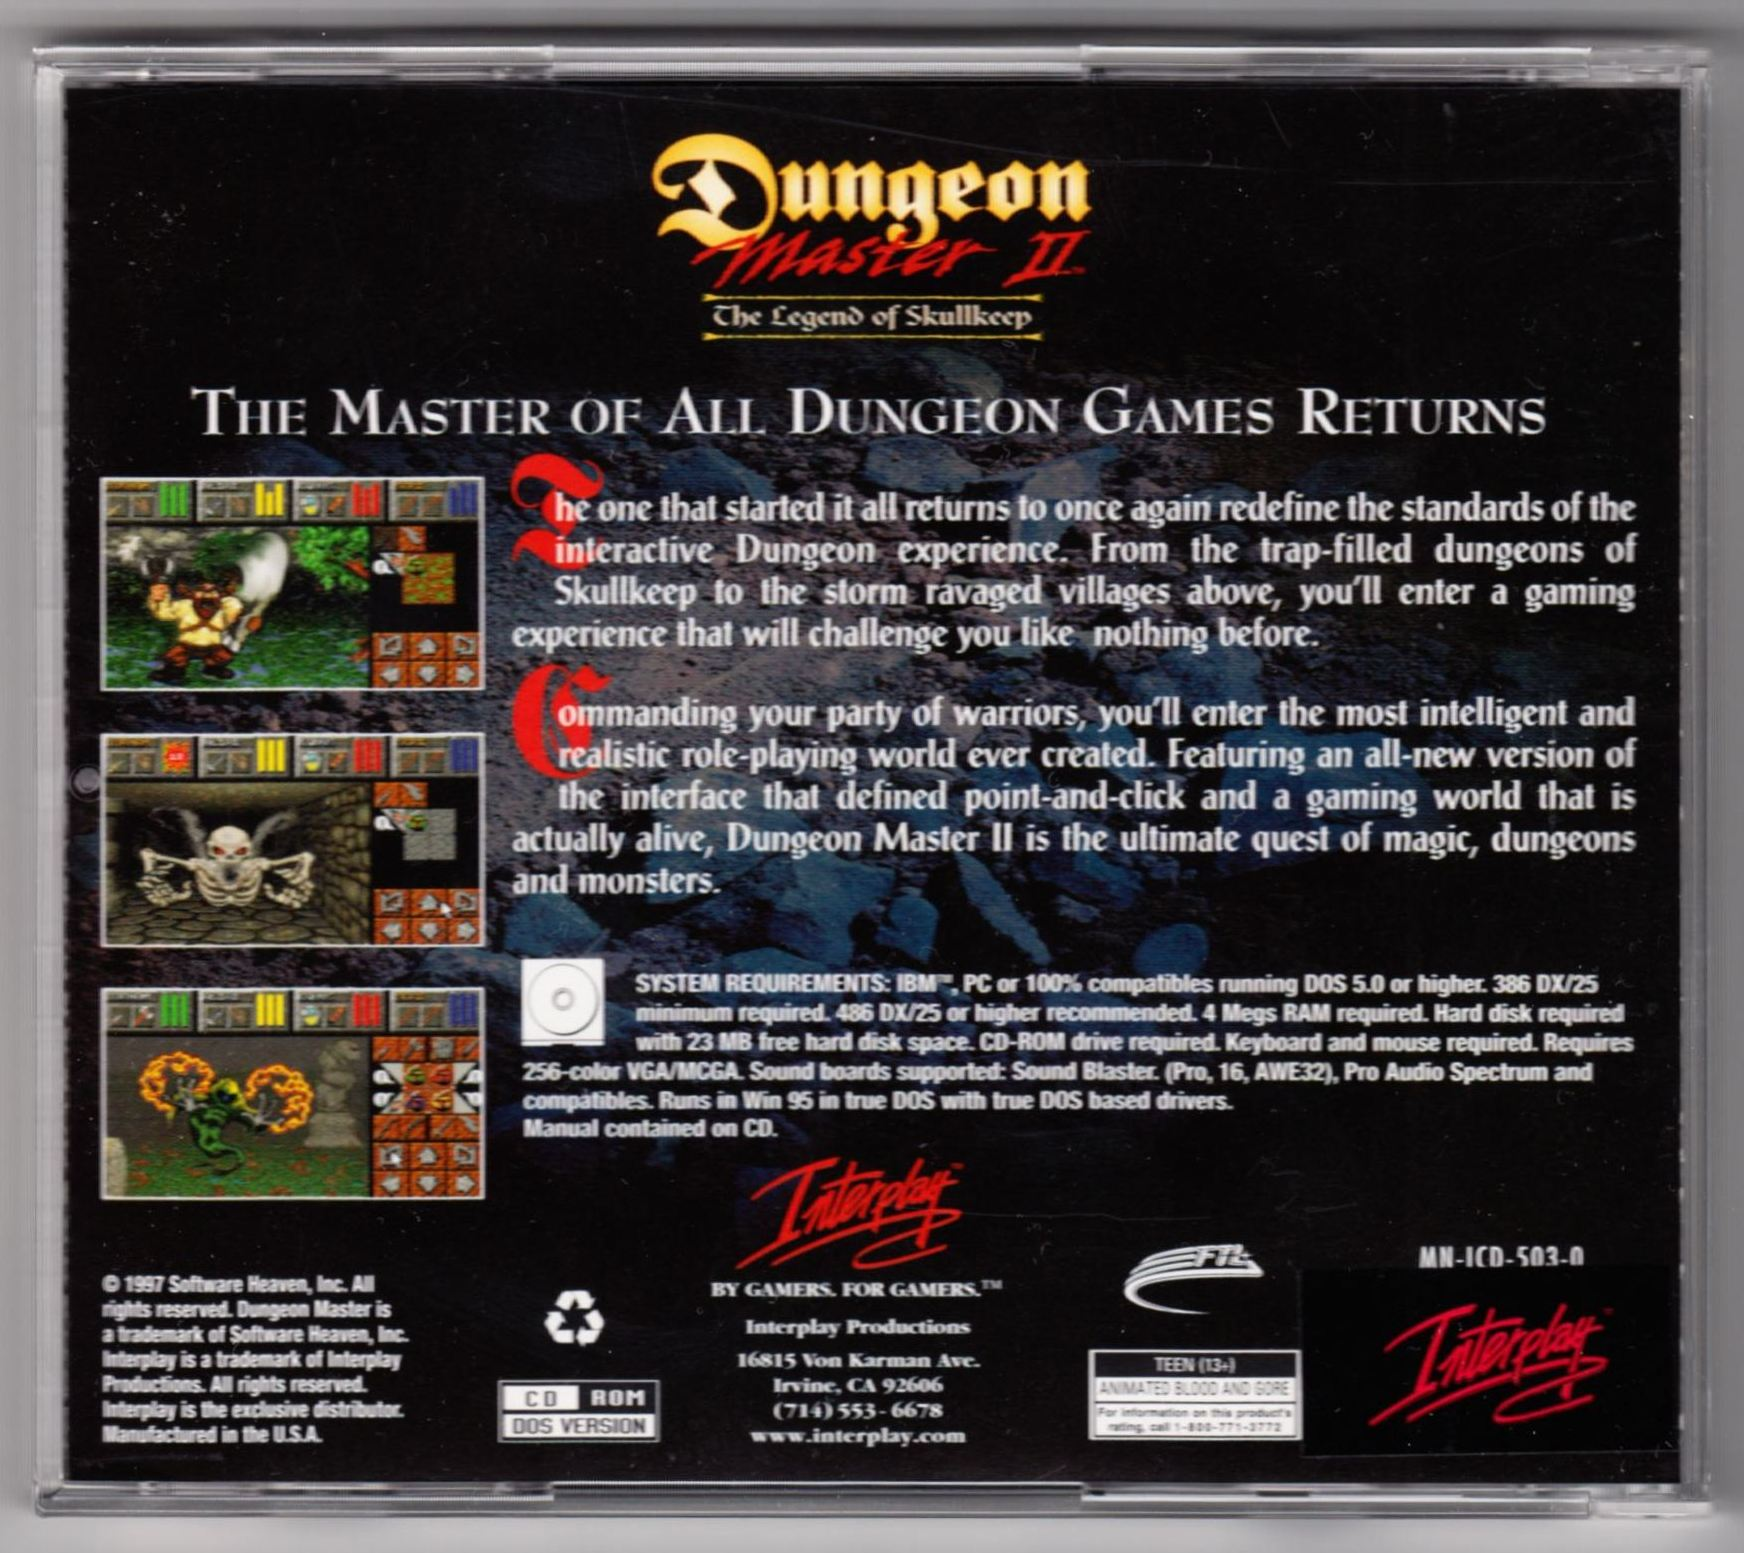 Game - Dungeon Master II - US - PC - Jewel Case - Box - Back - Scan